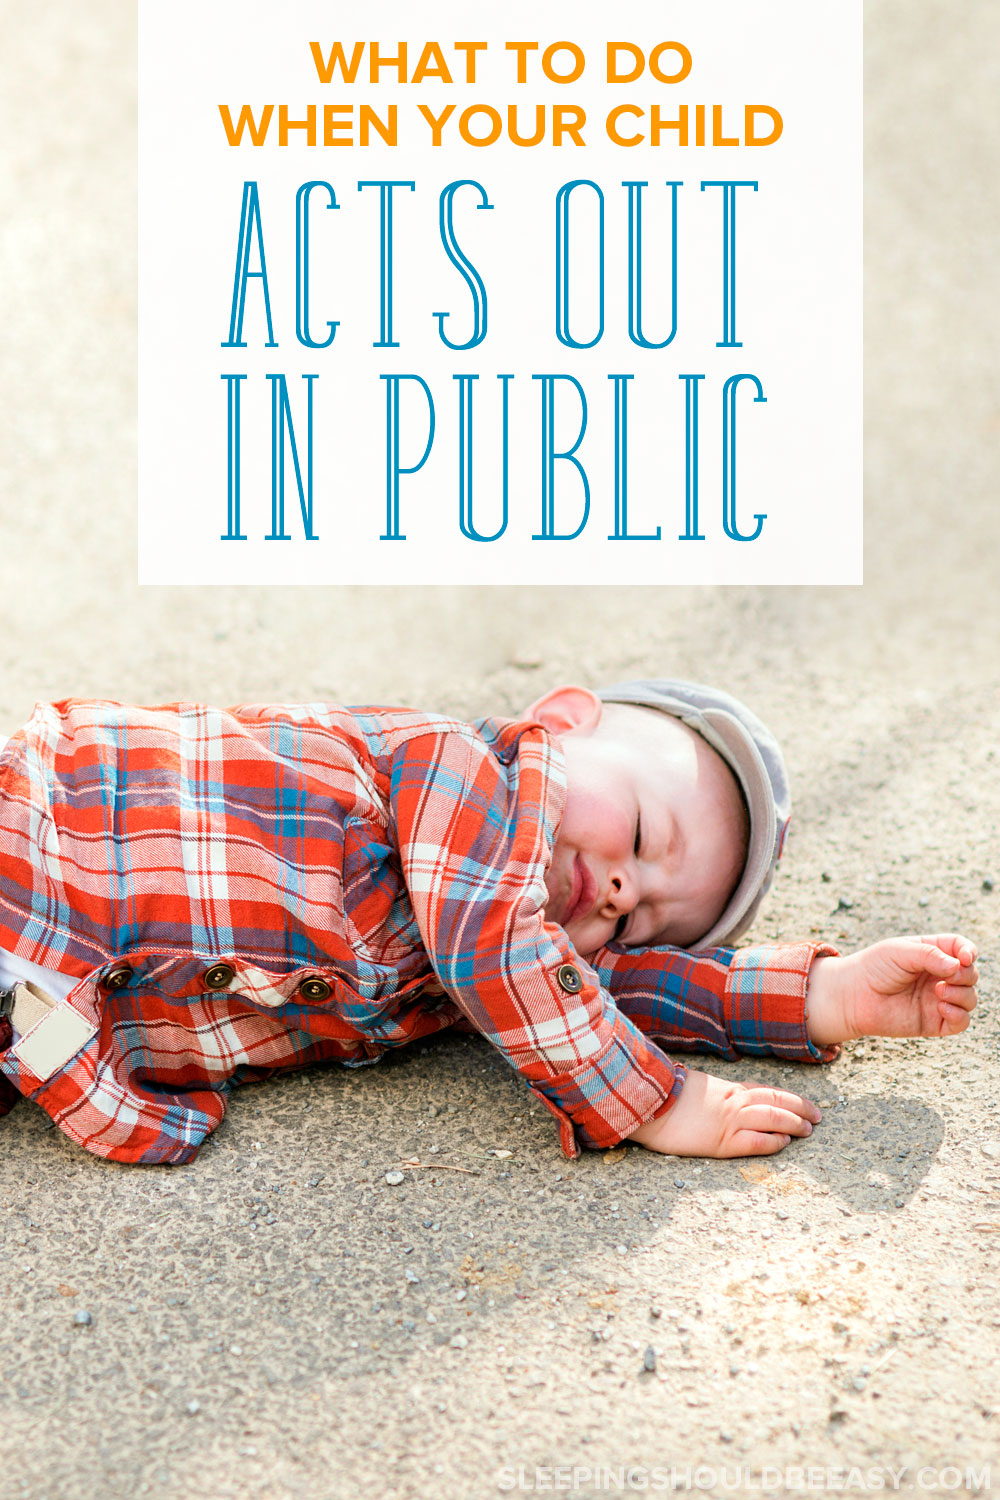 From family parties to restaurants, learn what to do when your child acts out in public, including how to handle a tantrum in front of others.